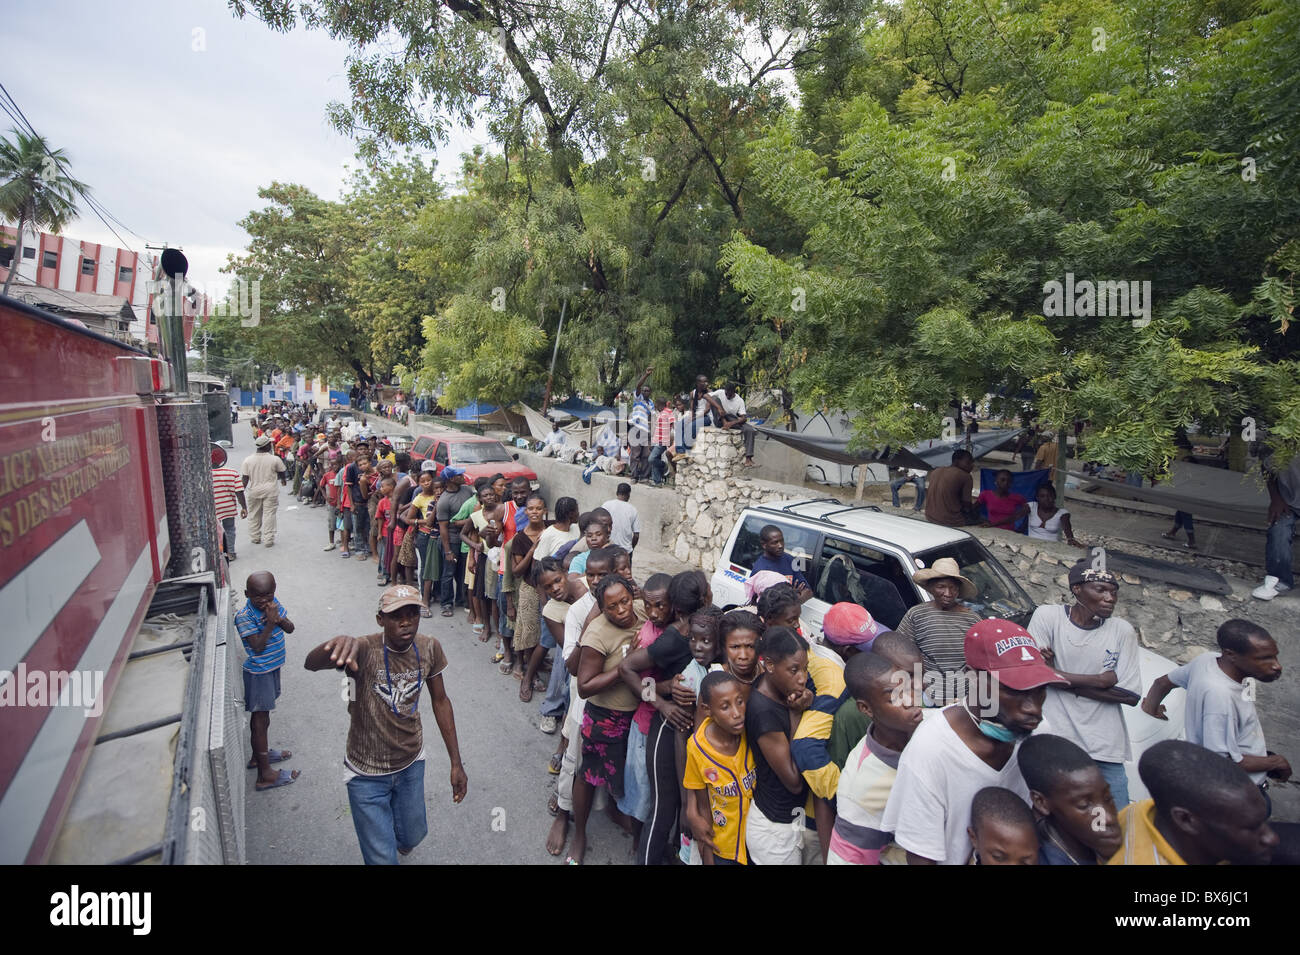 Crowds waiting for food distribution after the January 2010 earthquake, Port au Prince, Haiti, West Indies - Stock Image